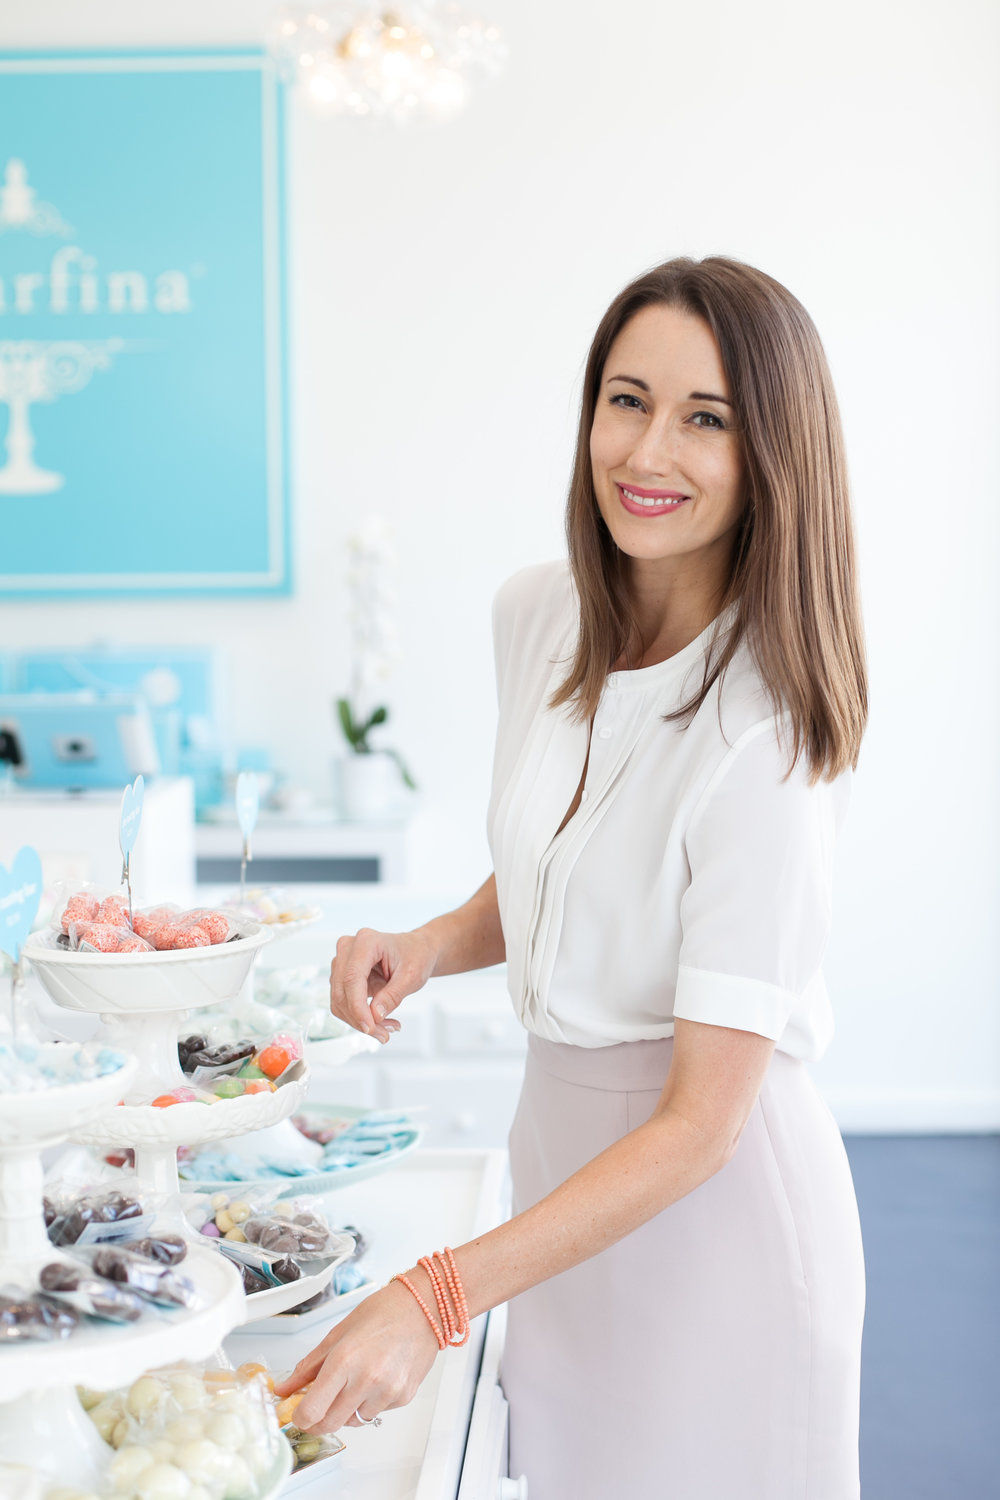 Save the Date: Join us at The slate on april 2nd at 9:30 am for coffee while we skype with rosie o'neill, co-founder and co-ceo of sugarfina - The Slate is located at 2403 Farrington, Dallas TX 75207